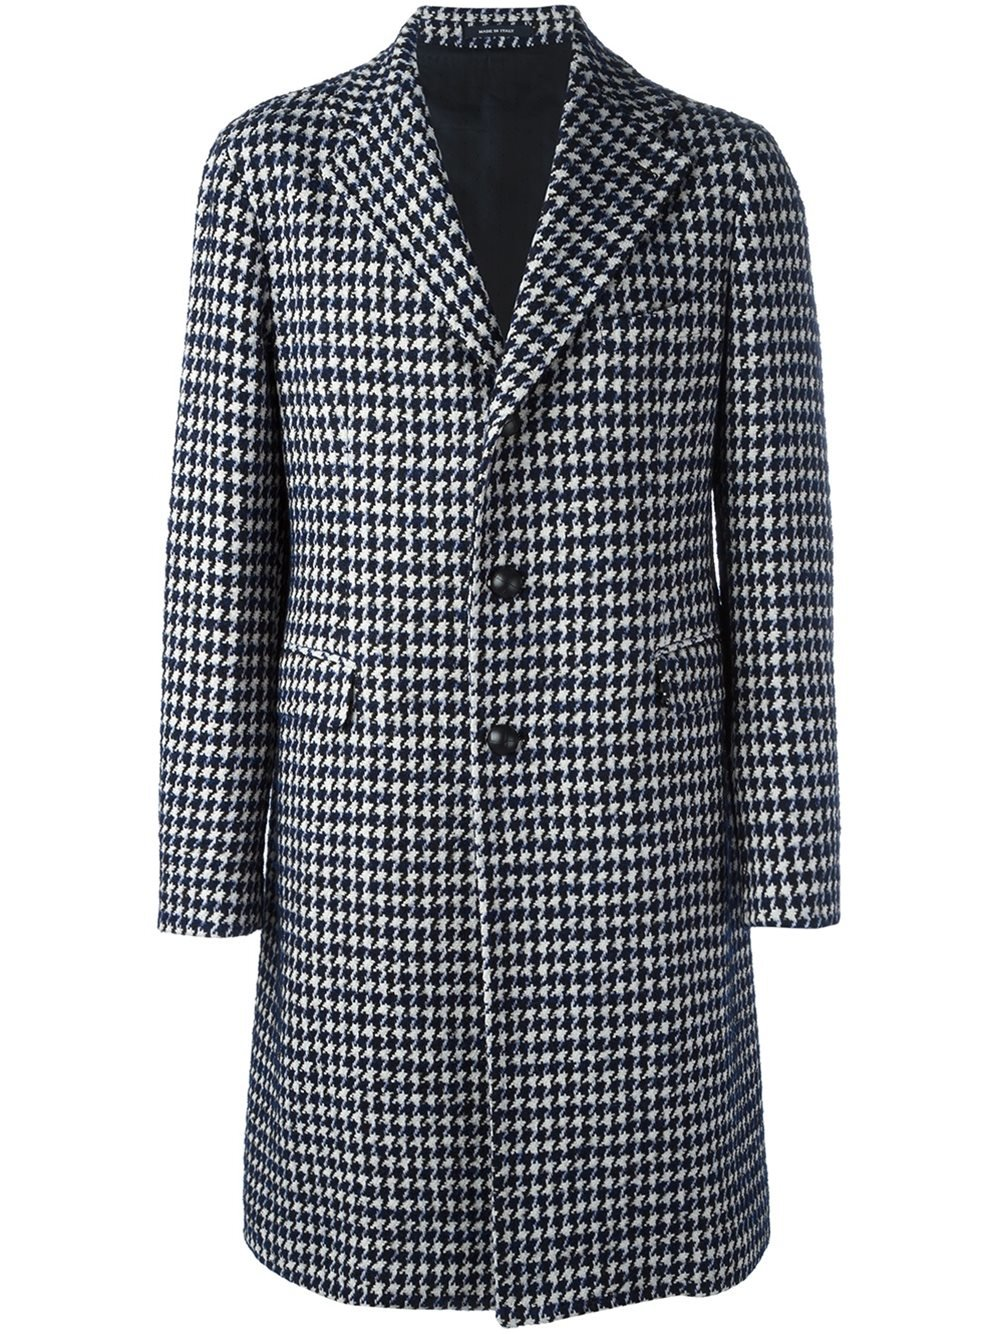 Lyst Tagliatore Houndstooth Patterned Coat In Black For Men